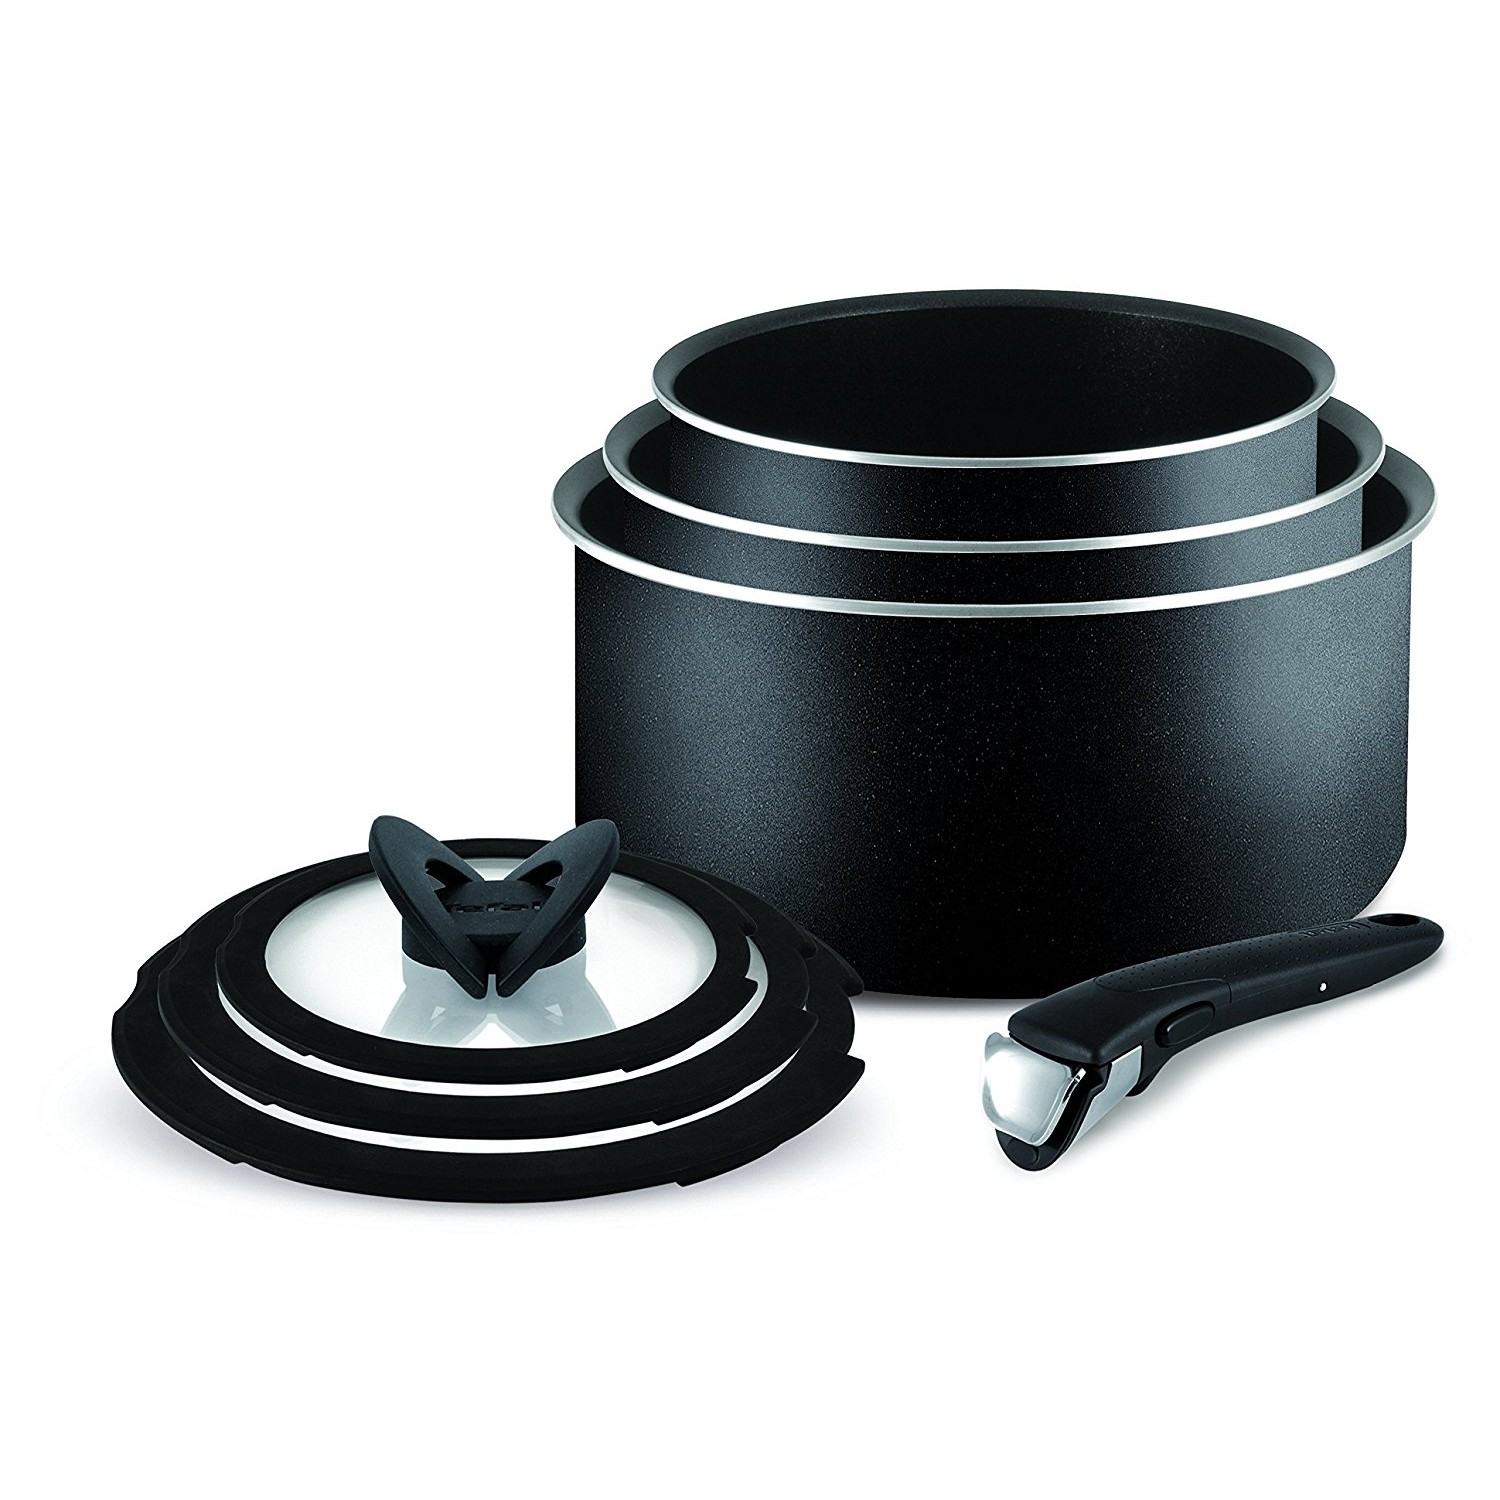 tefal ingenio essential non stick 7pc saucepan pan set kitchen cookware black ebay. Black Bedroom Furniture Sets. Home Design Ideas